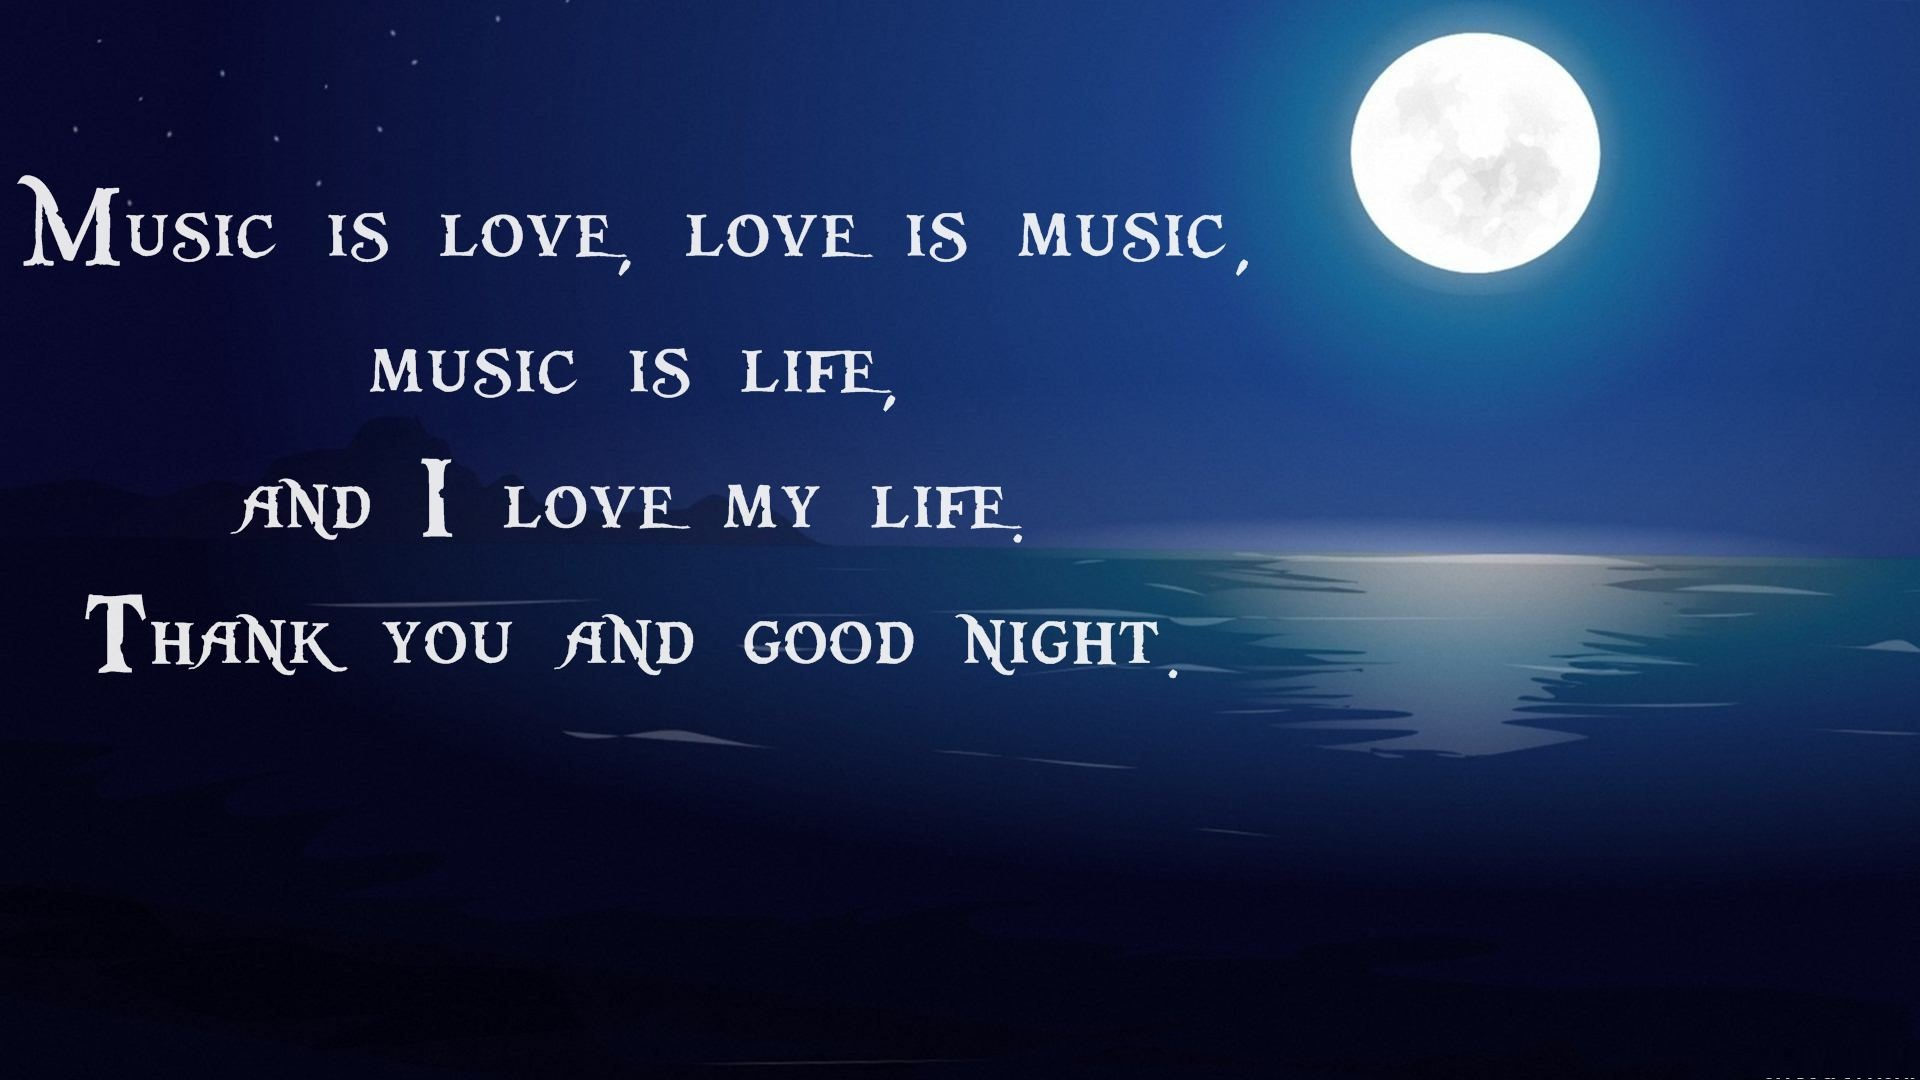 Wallpaper Good Night Love You : Good Night Wallpapers HD with quotes and Wishes